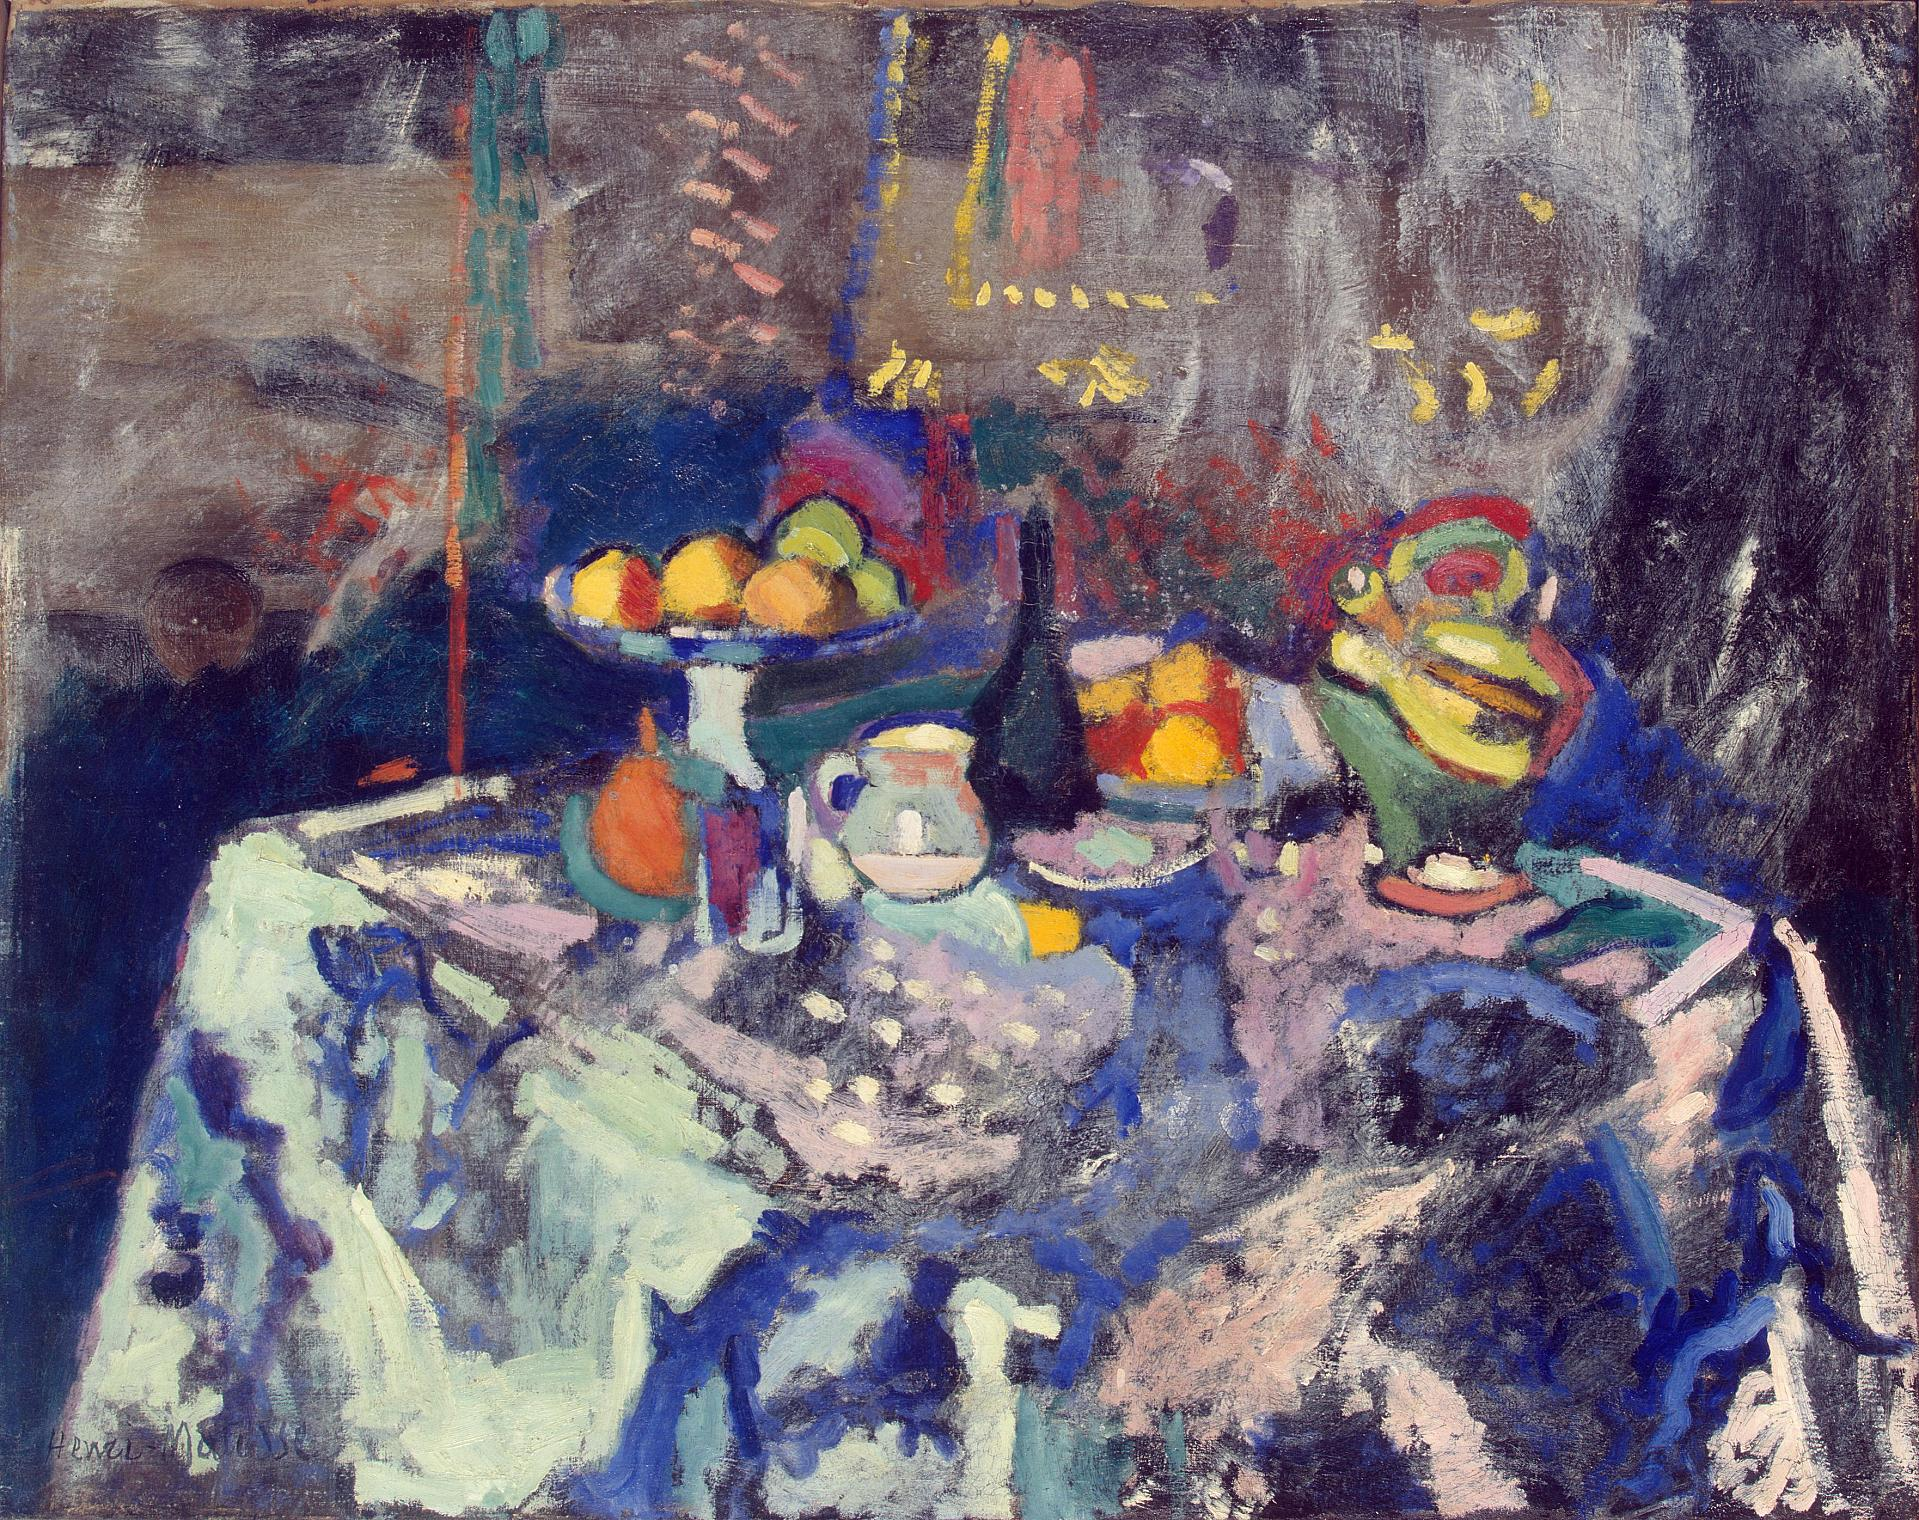 Henri Matisse - Vase, Bottle and Fruit 1906